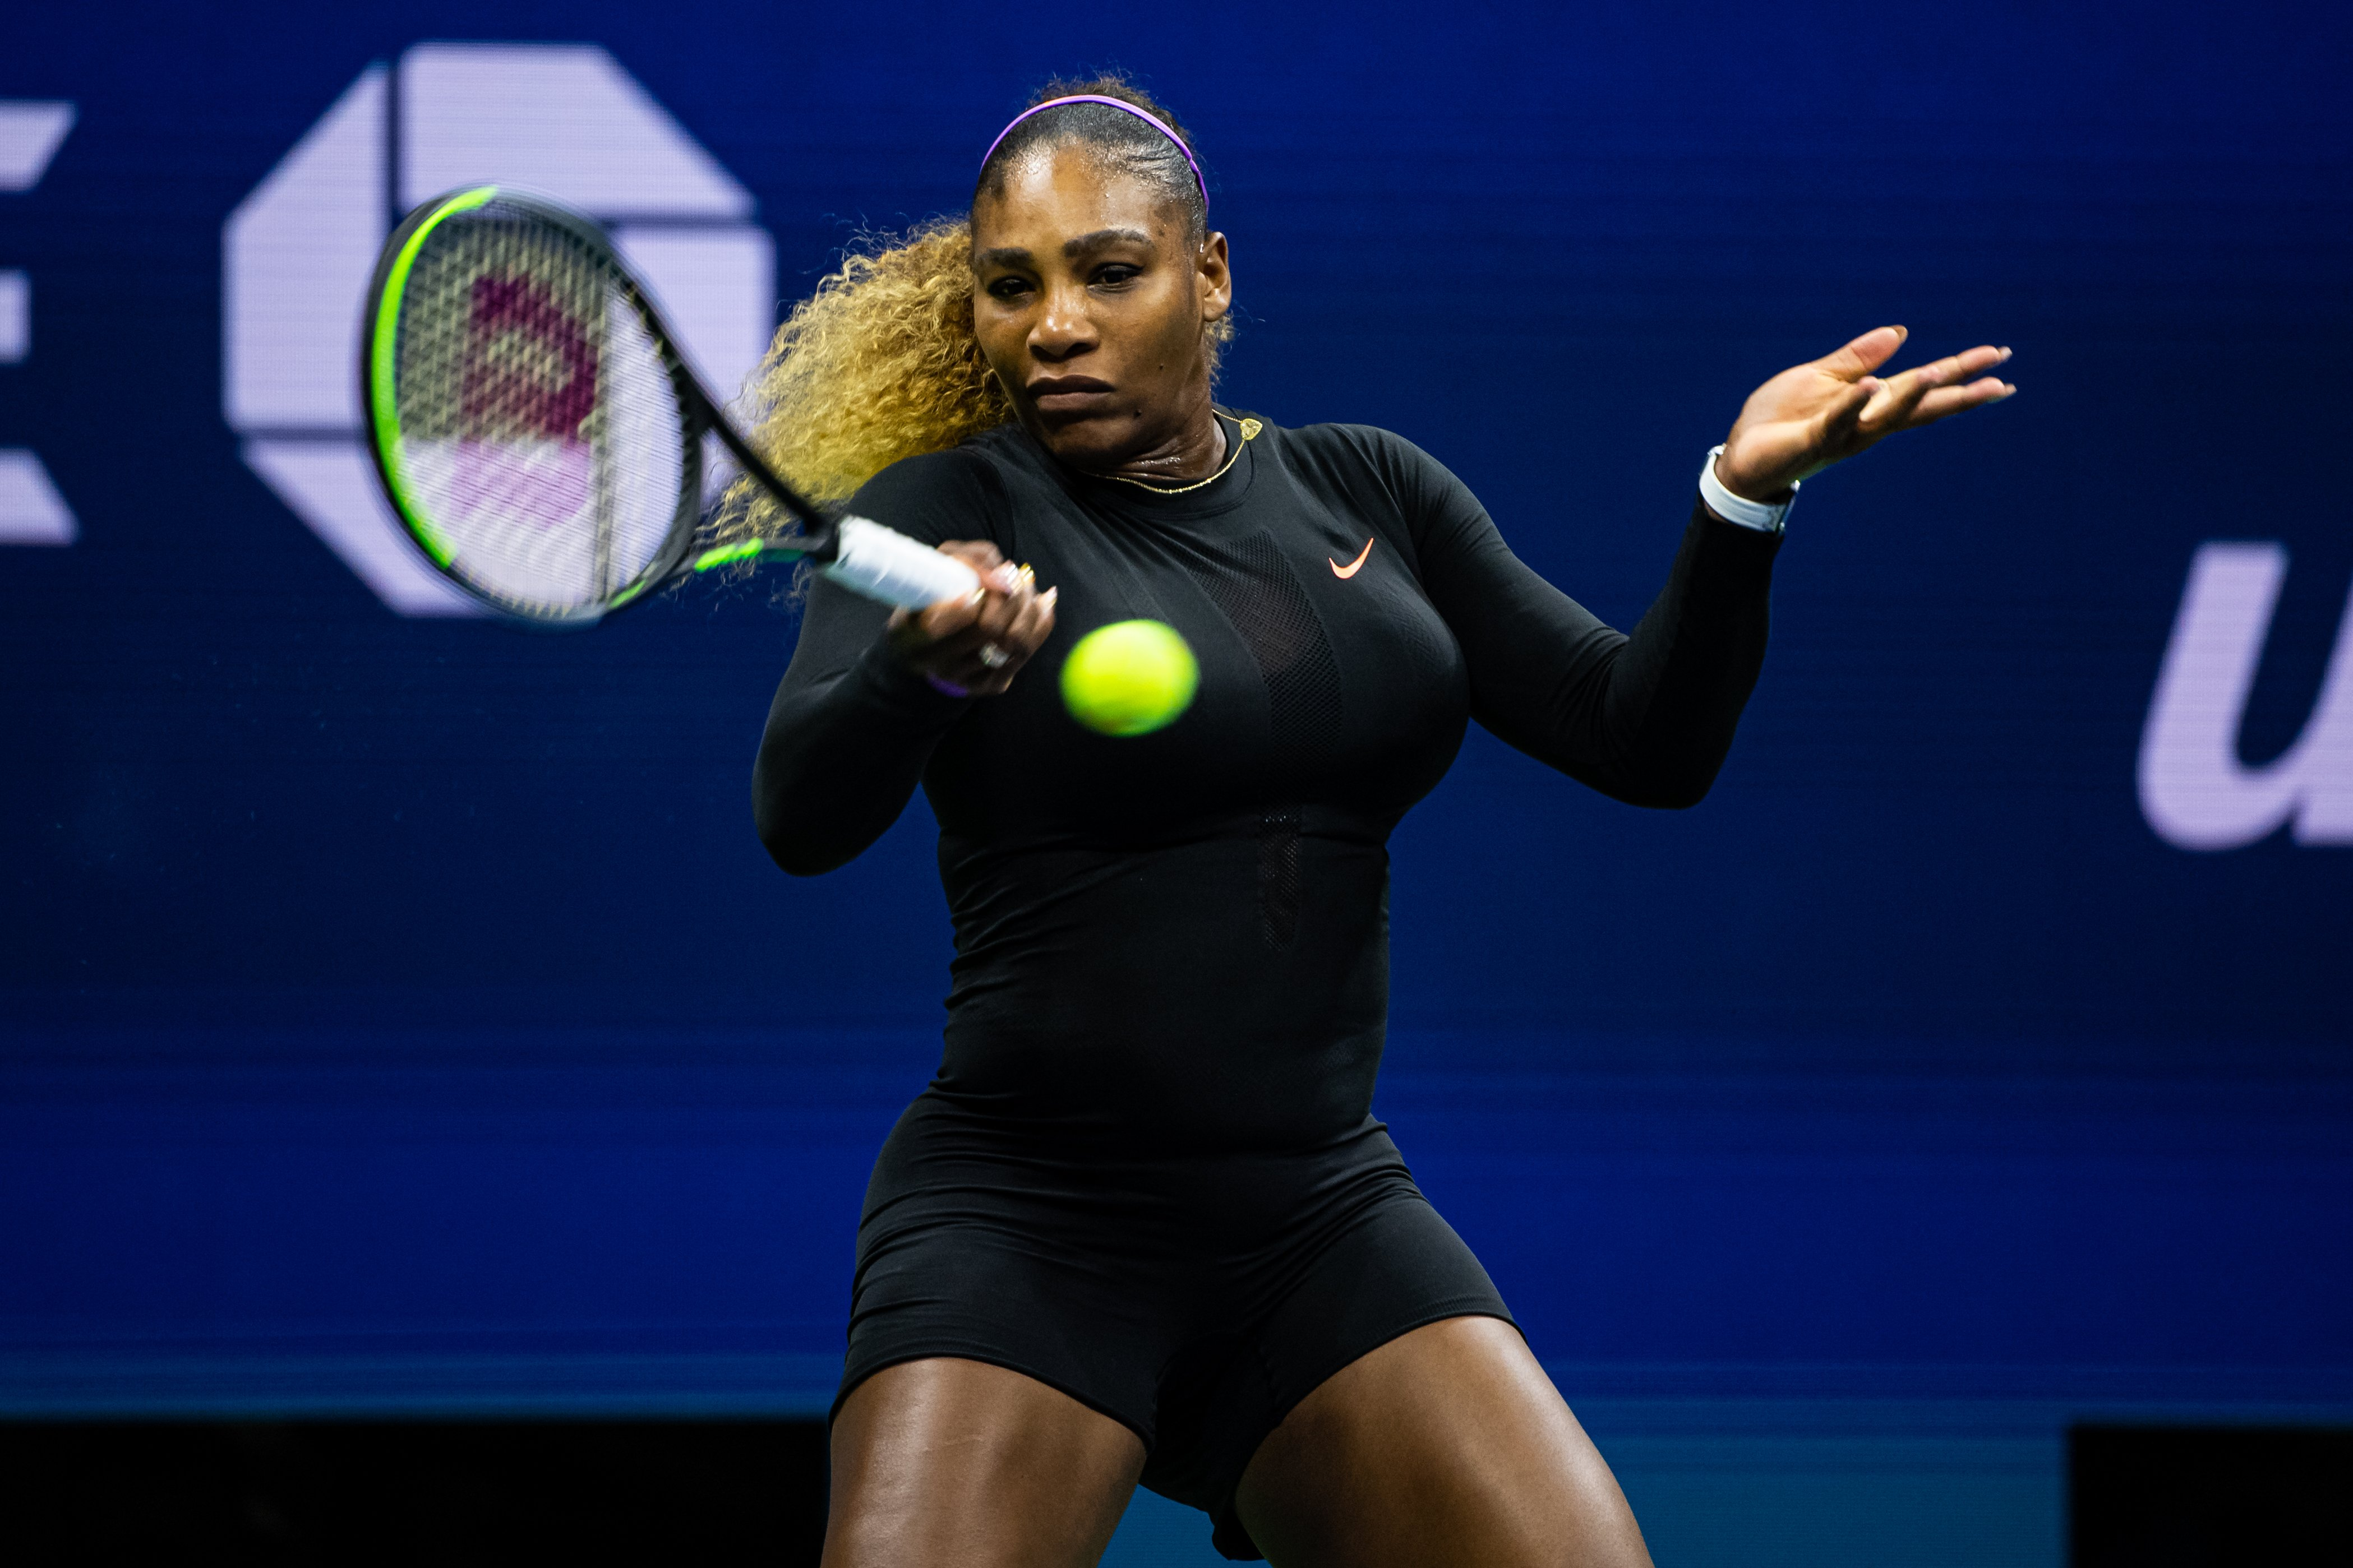 Serena Williams during her tennis match at the 2019 US Open in Queens, New York.   Photo: Getty Images